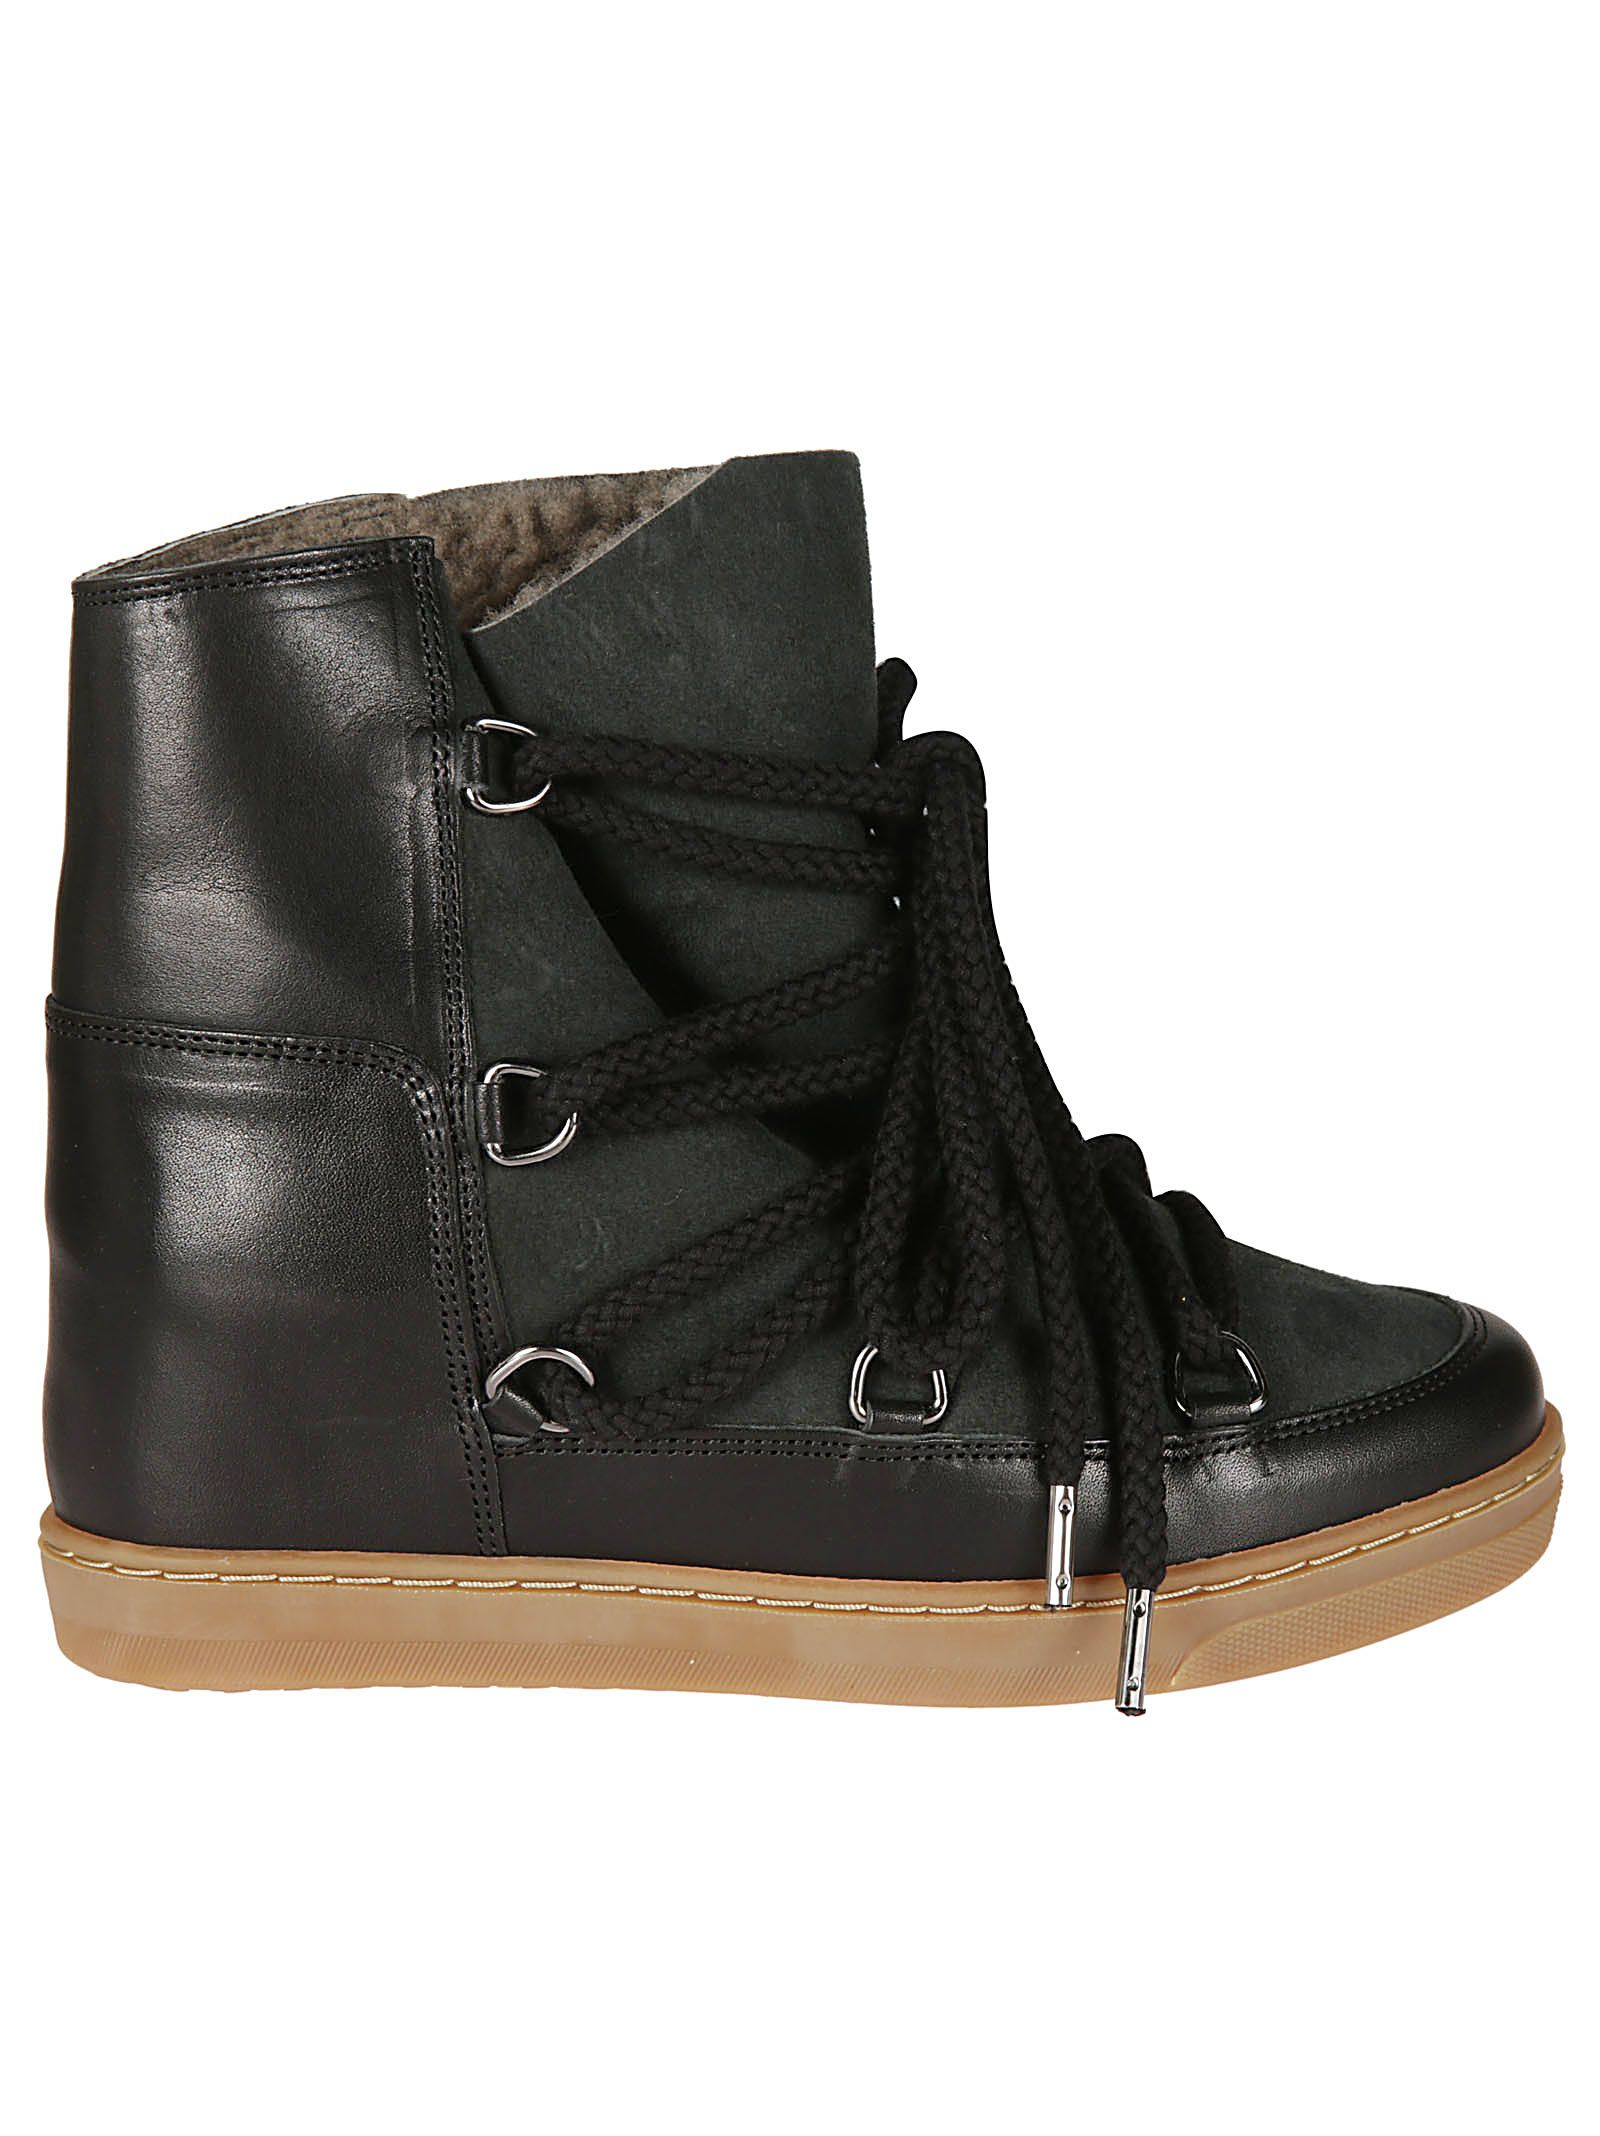 Nowles Lace-Up Boots, Black